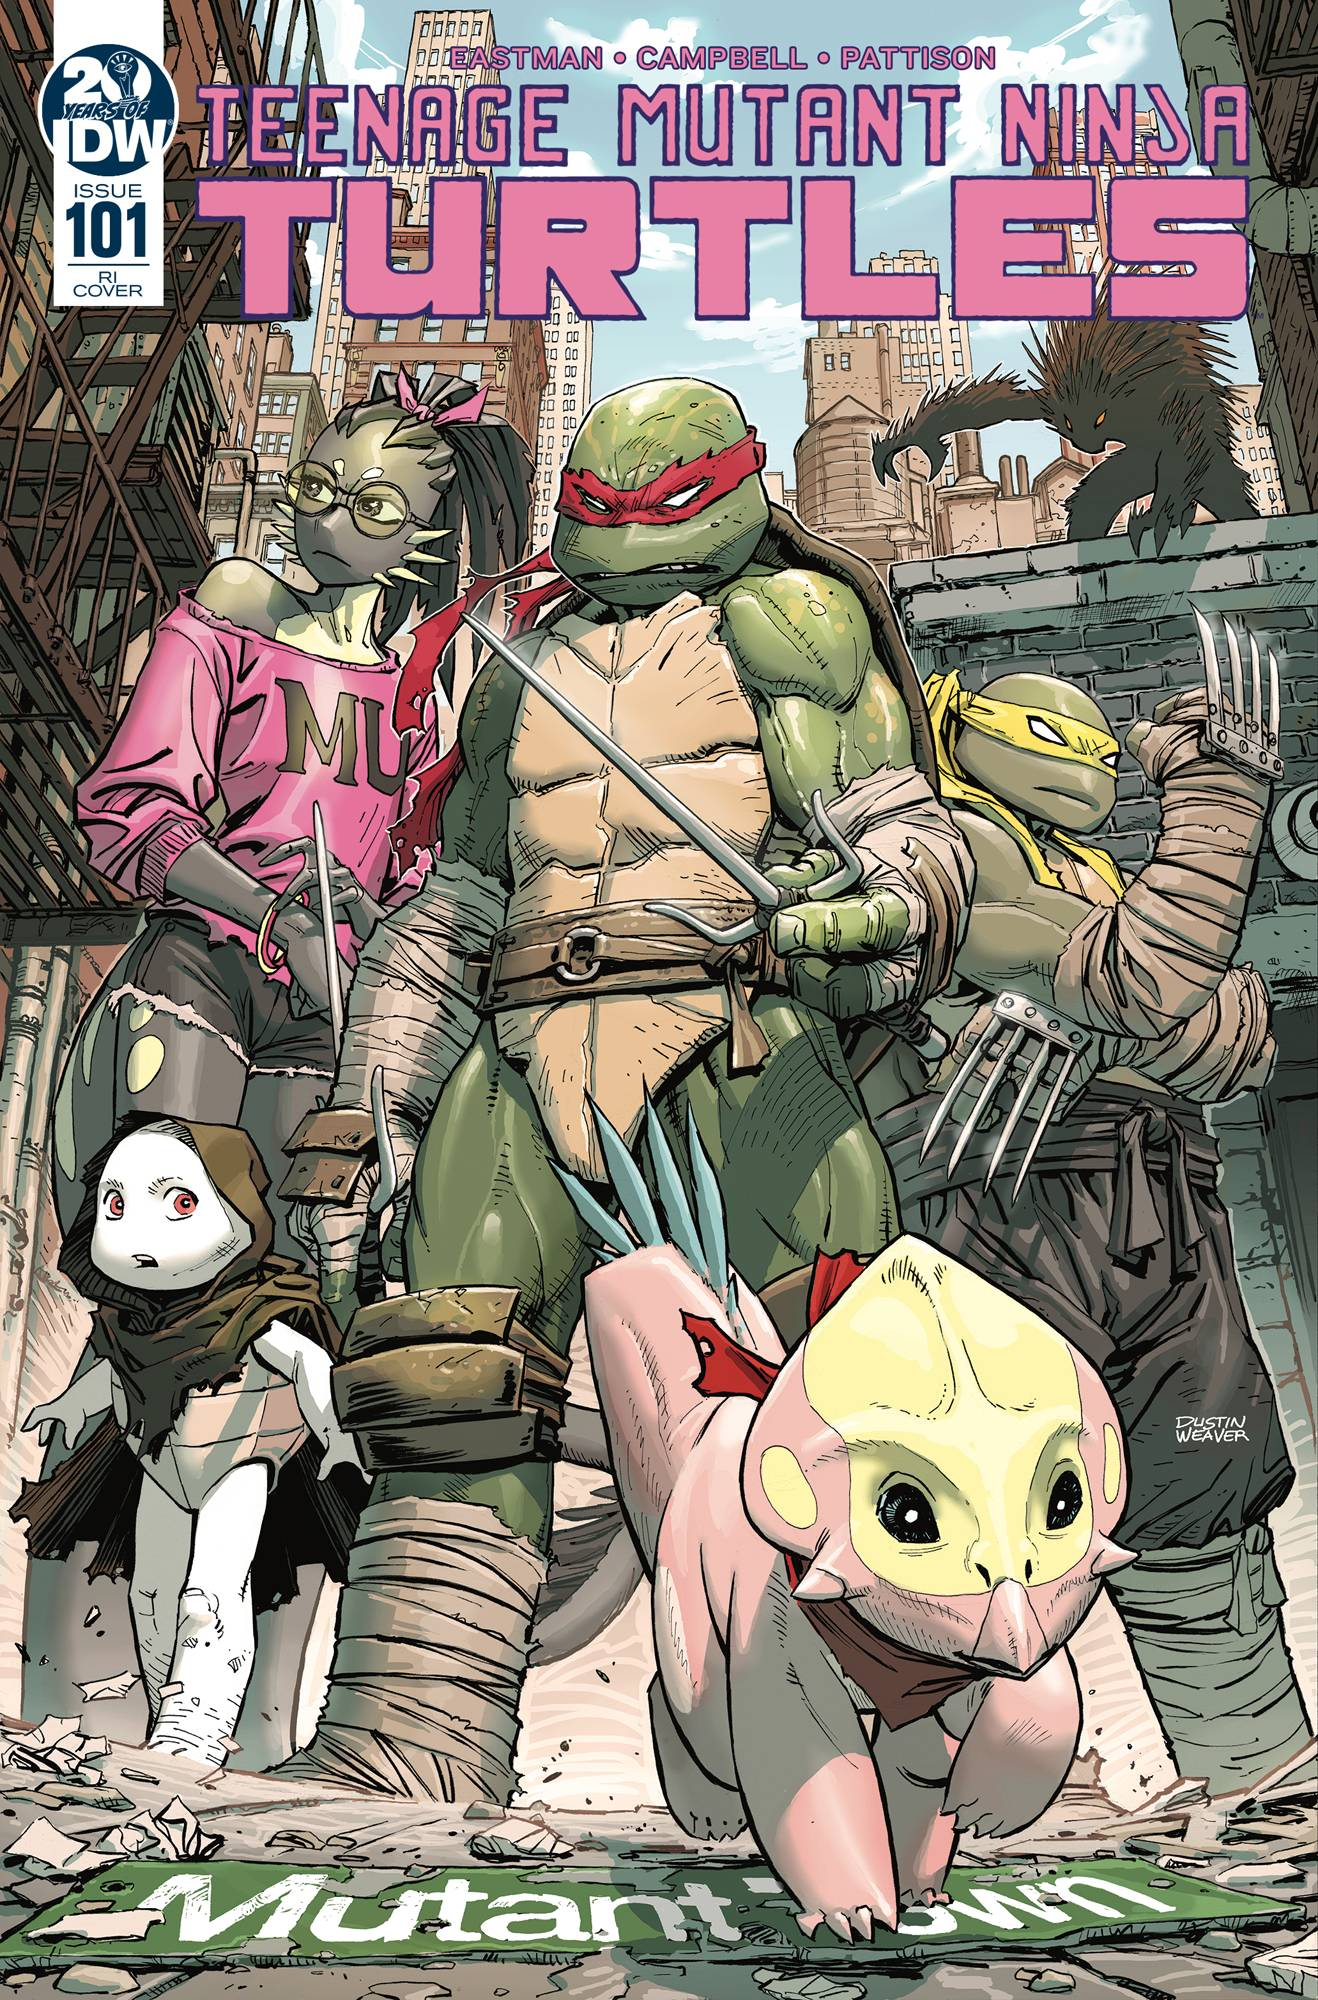 TMNT ONGOING #101 10 COPY INCV WEAVER